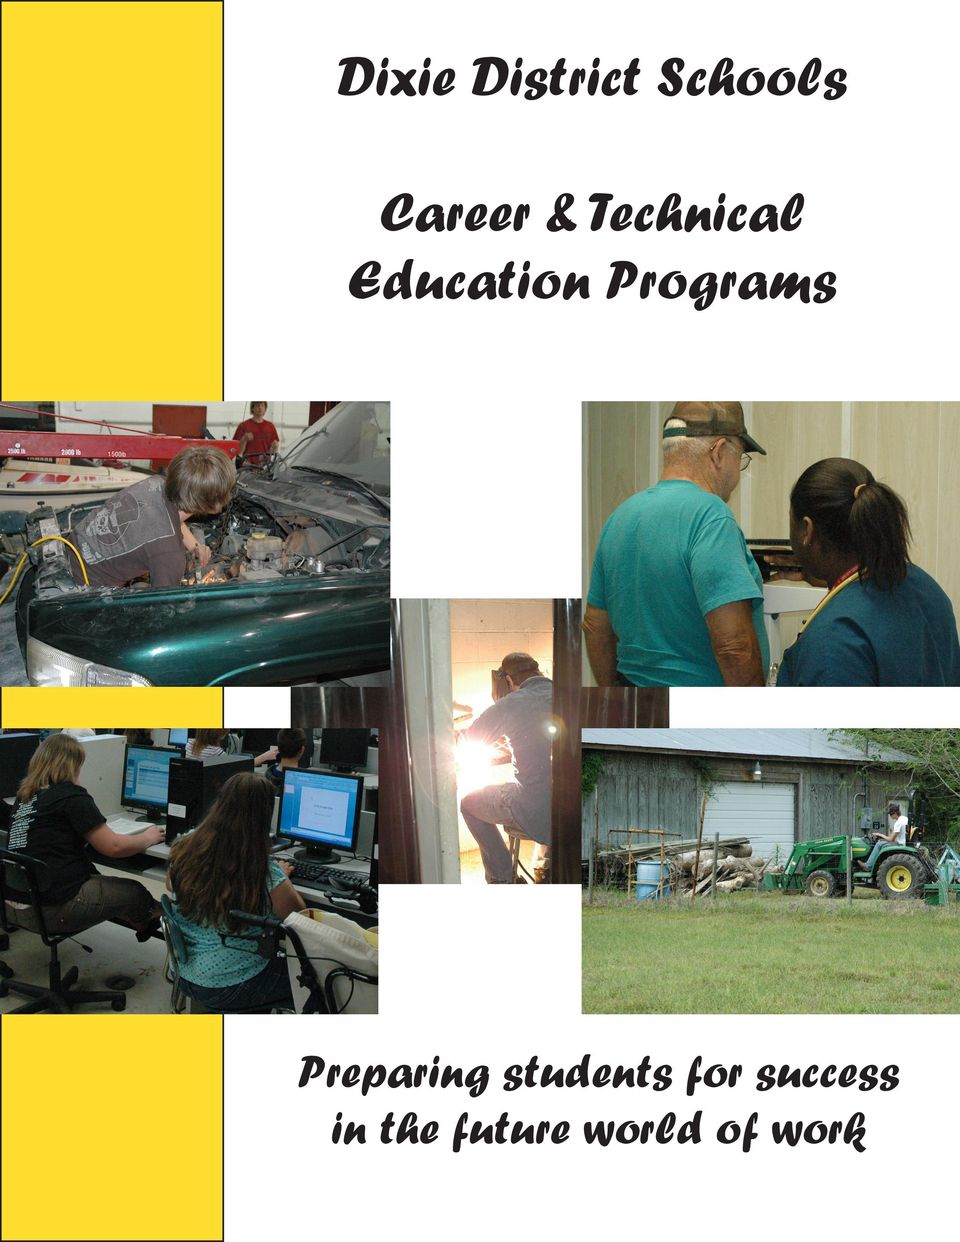 Programs Preparing students